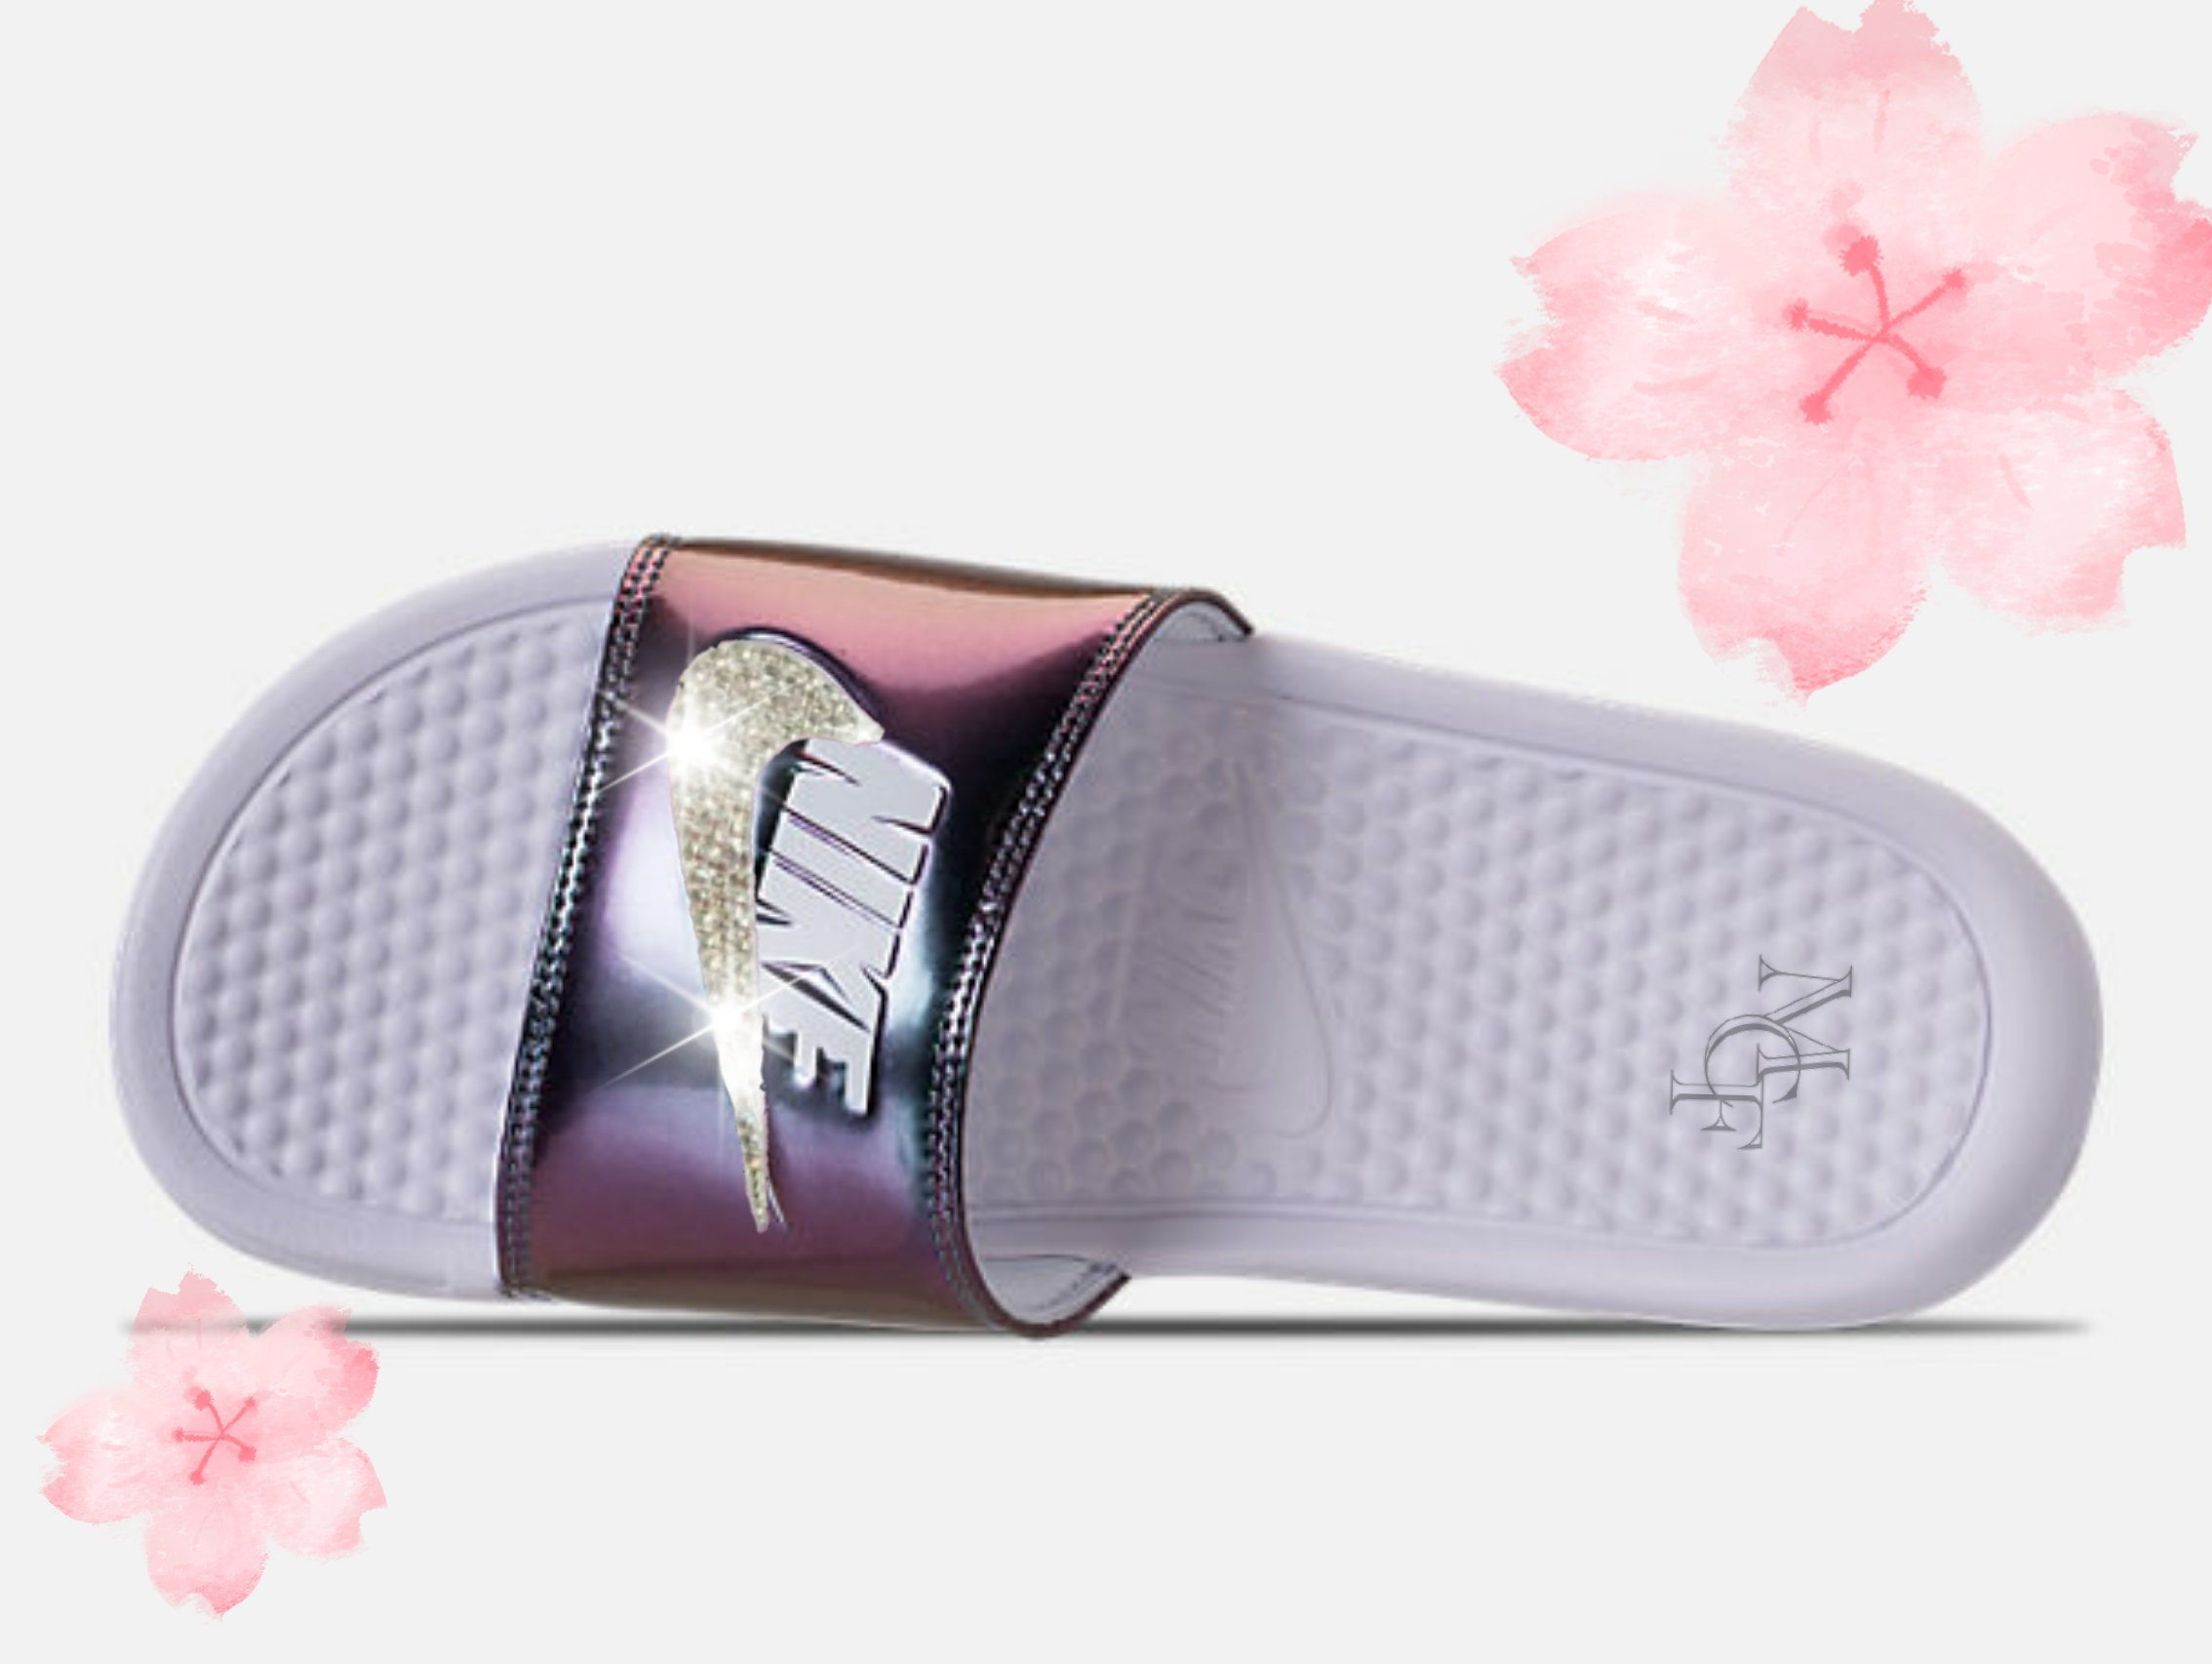 8084356e1 ... sale nike benassi slides sandals customized with swarovski etsy 15d4d  798a0